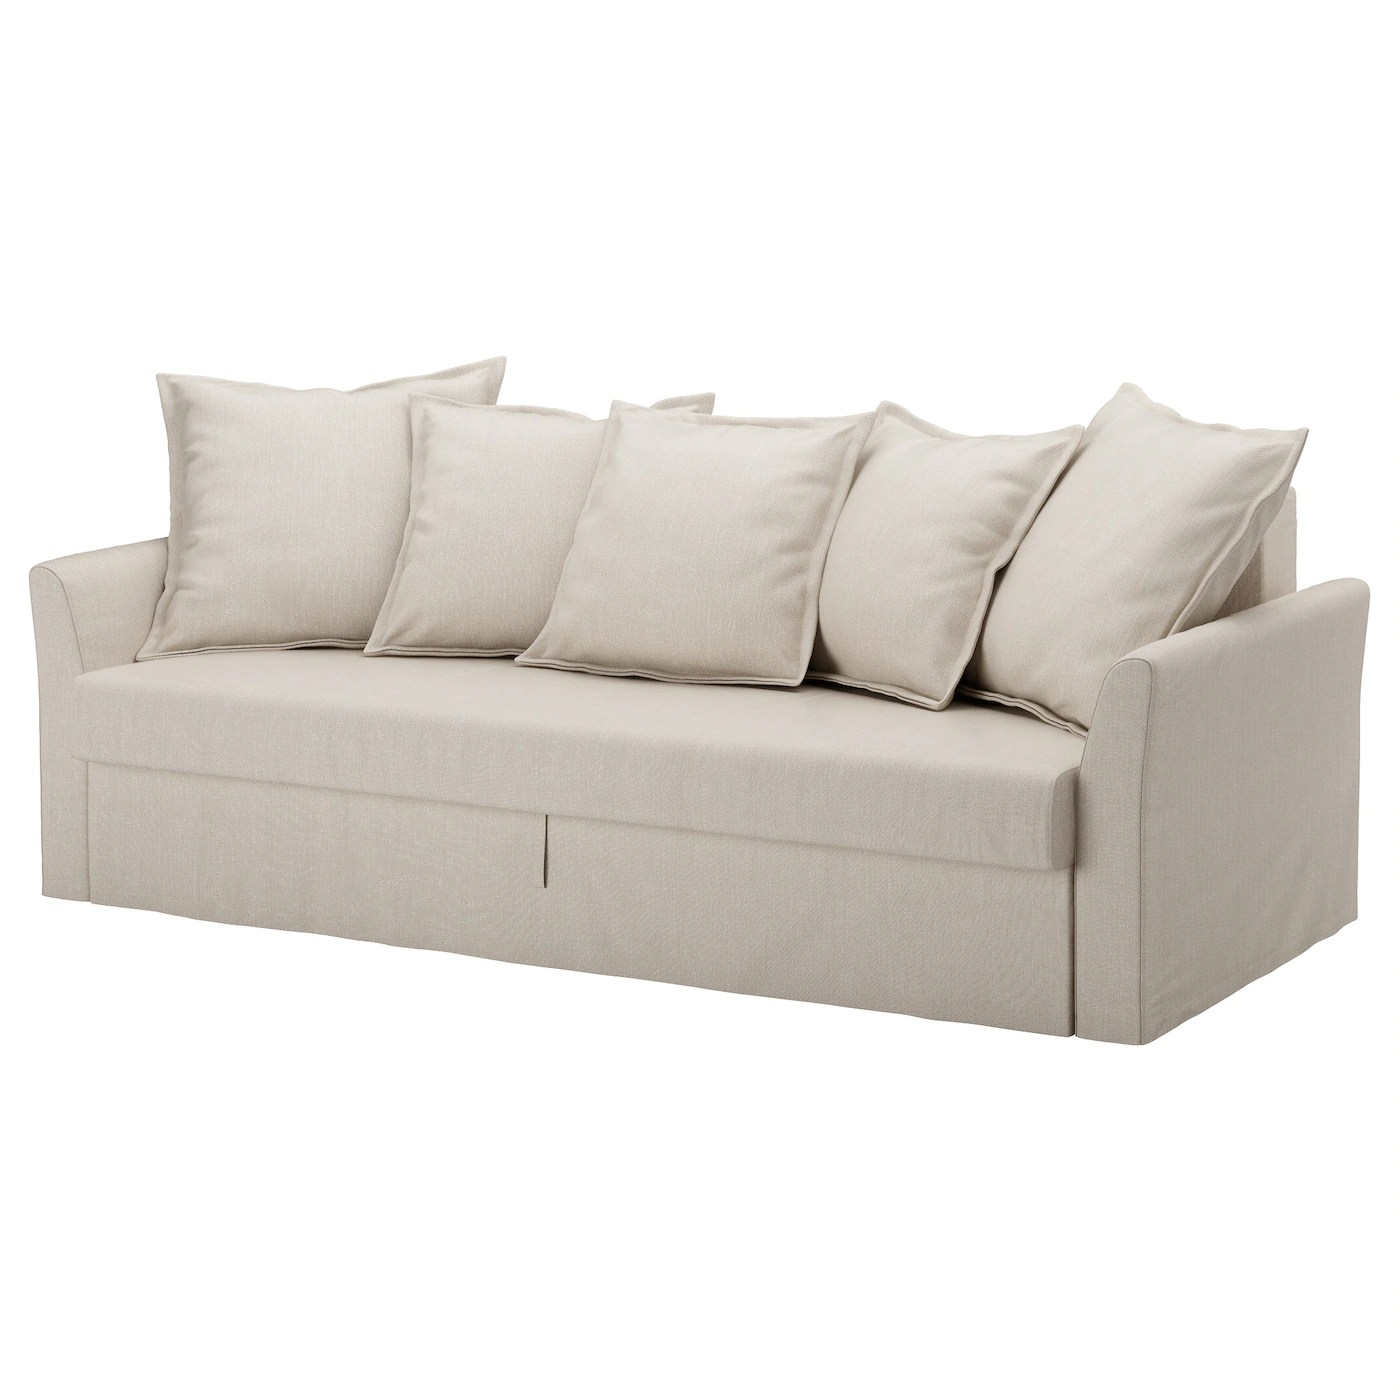 Ikea Sofa Bed Sofa Beds Chair Beds Ikea Ireland Dublin